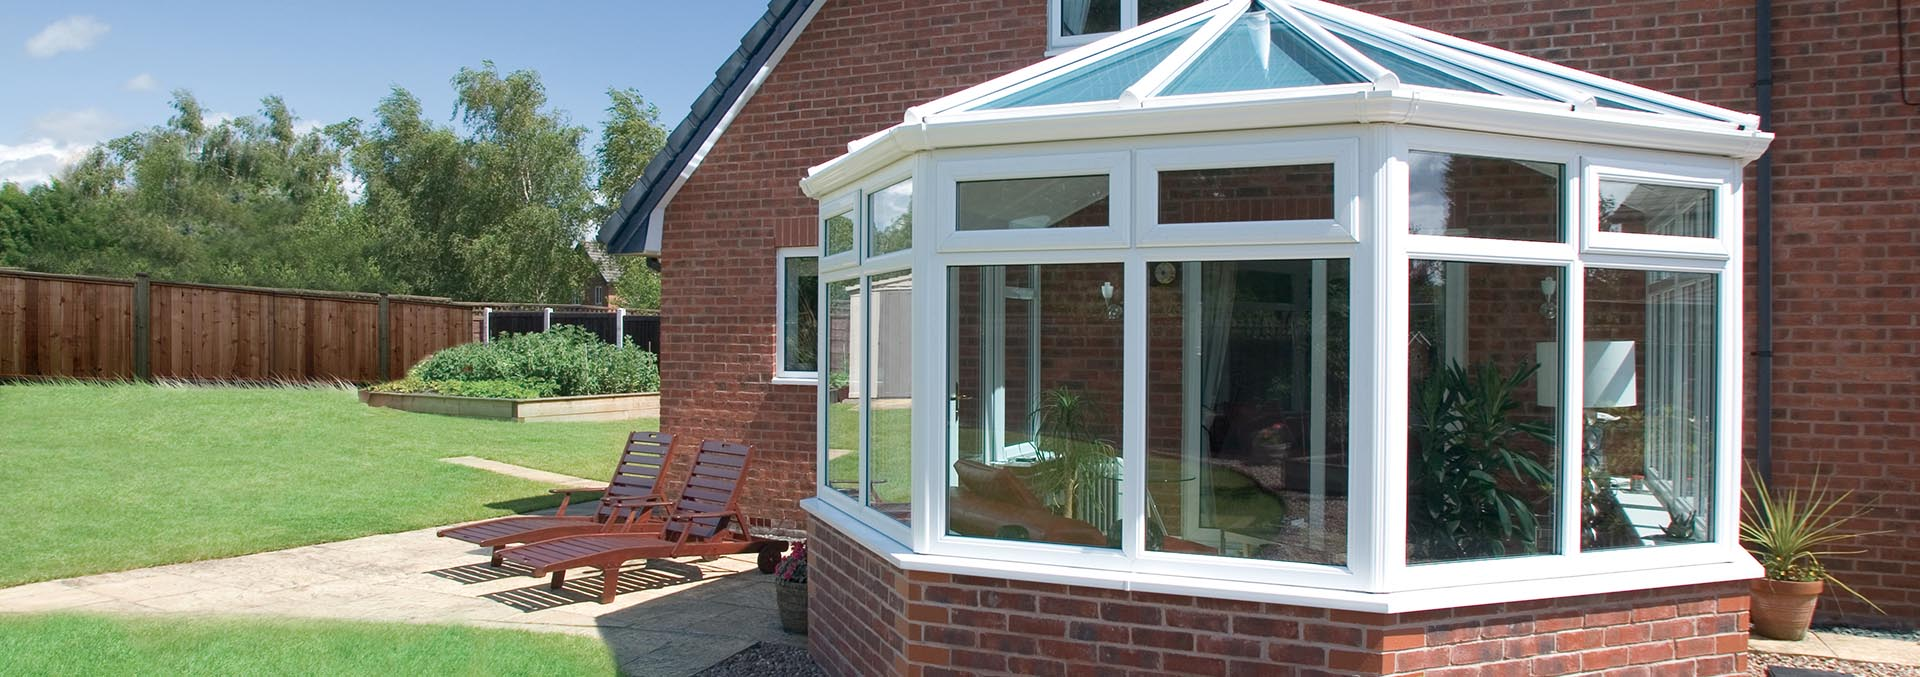 Small victorian conservatory with uPVC frame and brick base